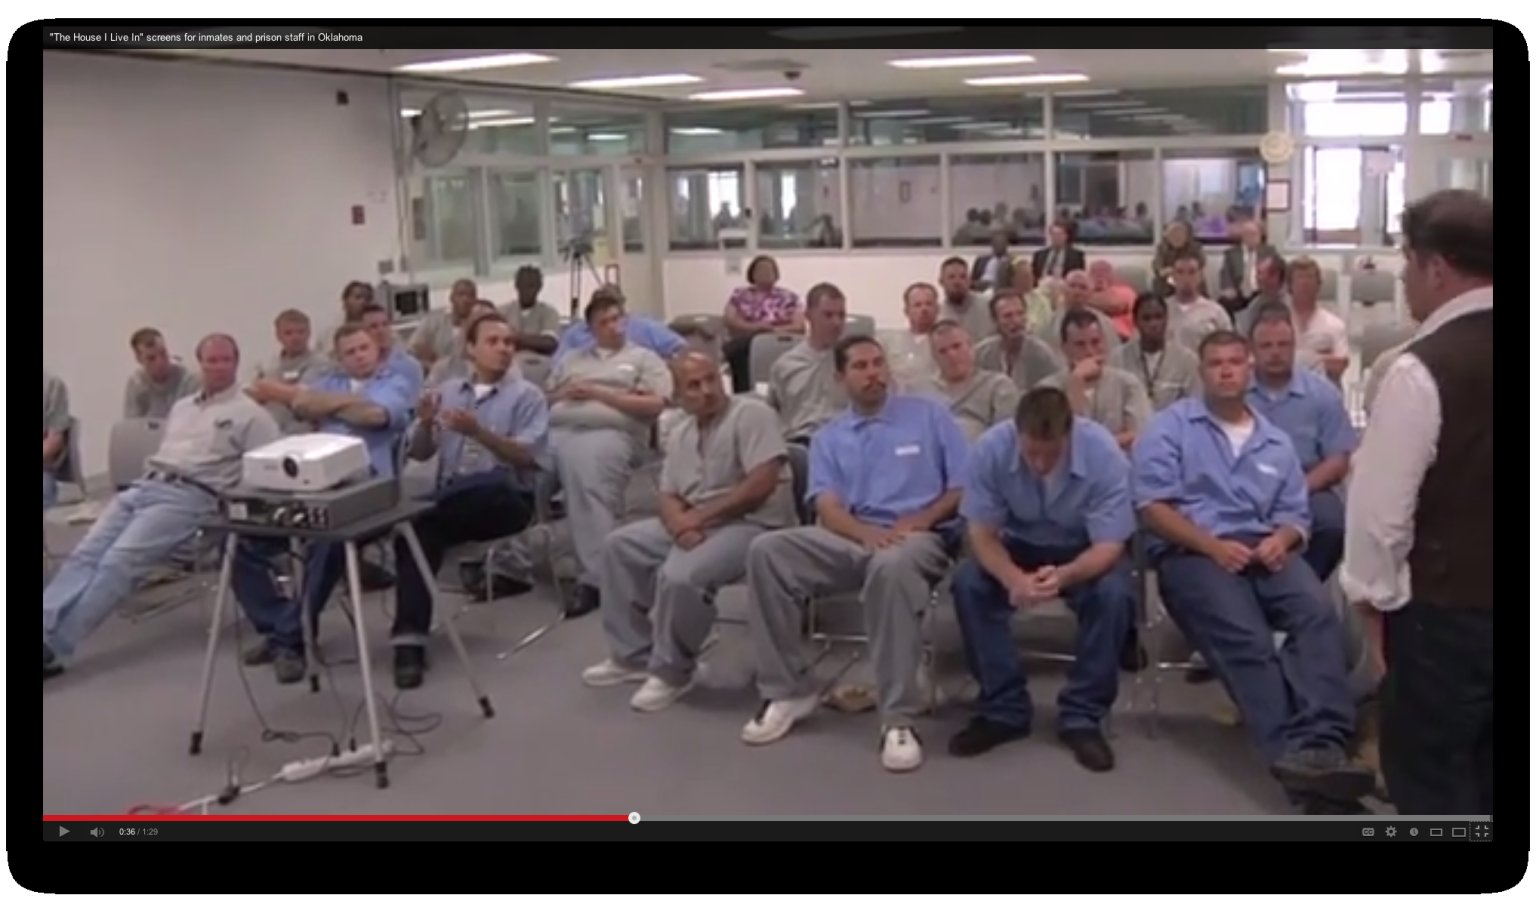 Inmates U0026 Prison Guards Watch A Documentary On The Failed War On Drugs  Together, Find Agreement | HuffPost